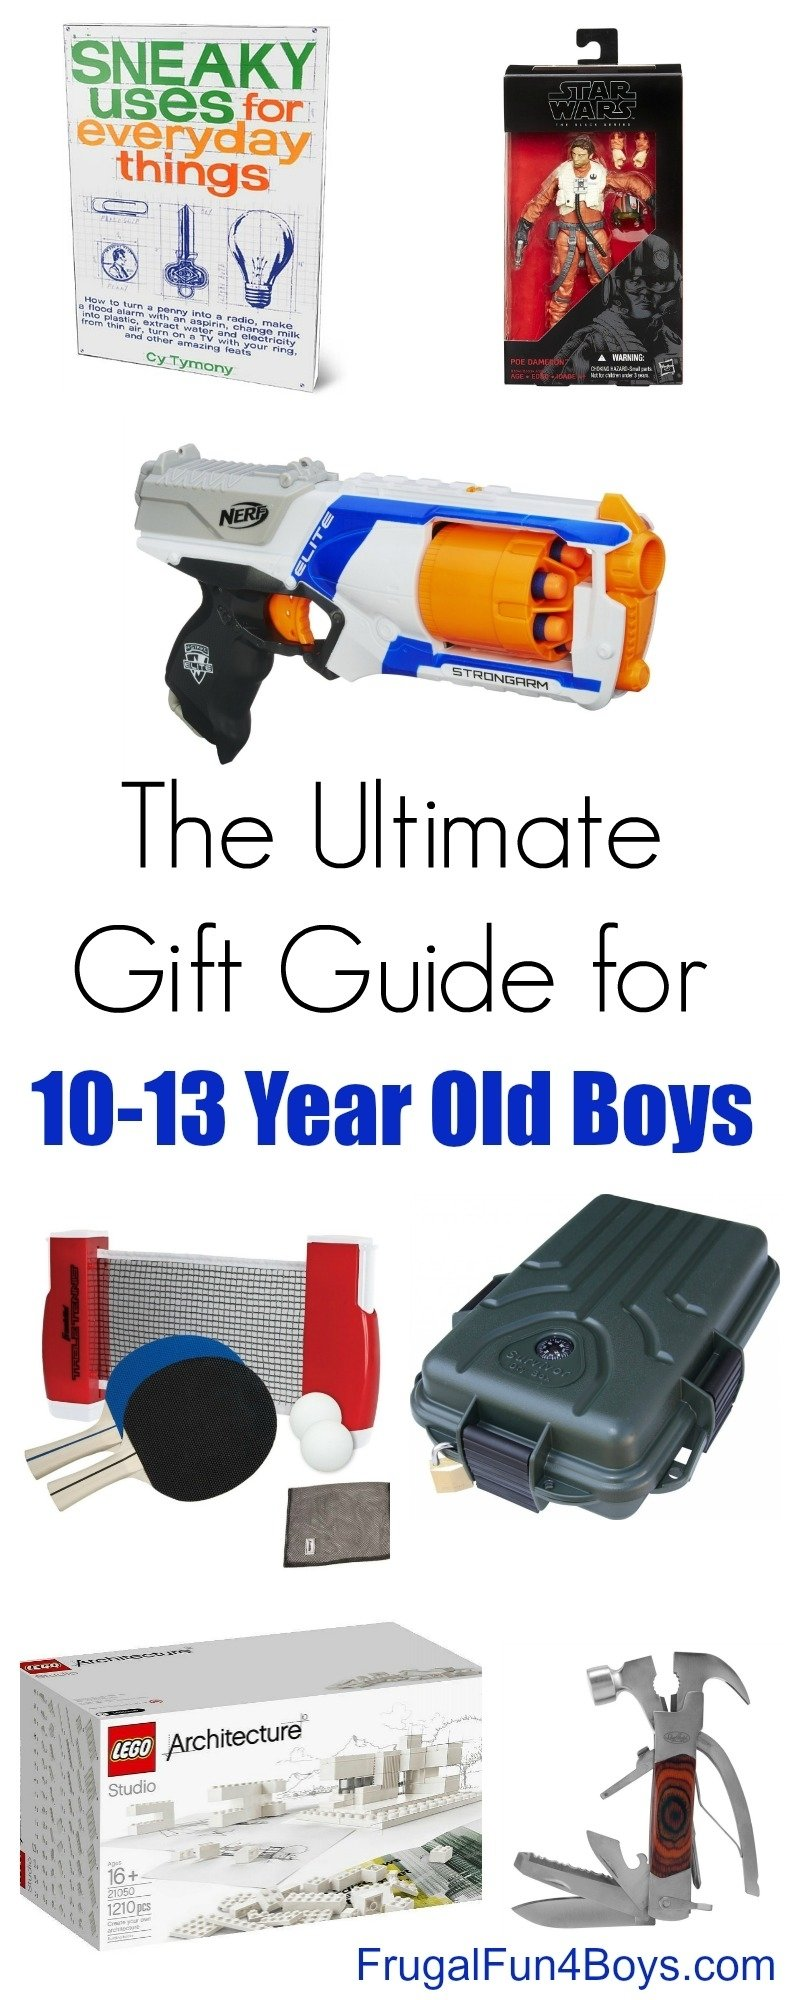 10 Beautiful Christmas Gift Ideas For 13 Year Old Boy gift ideas for 10 to 13 year old boys 42 2020